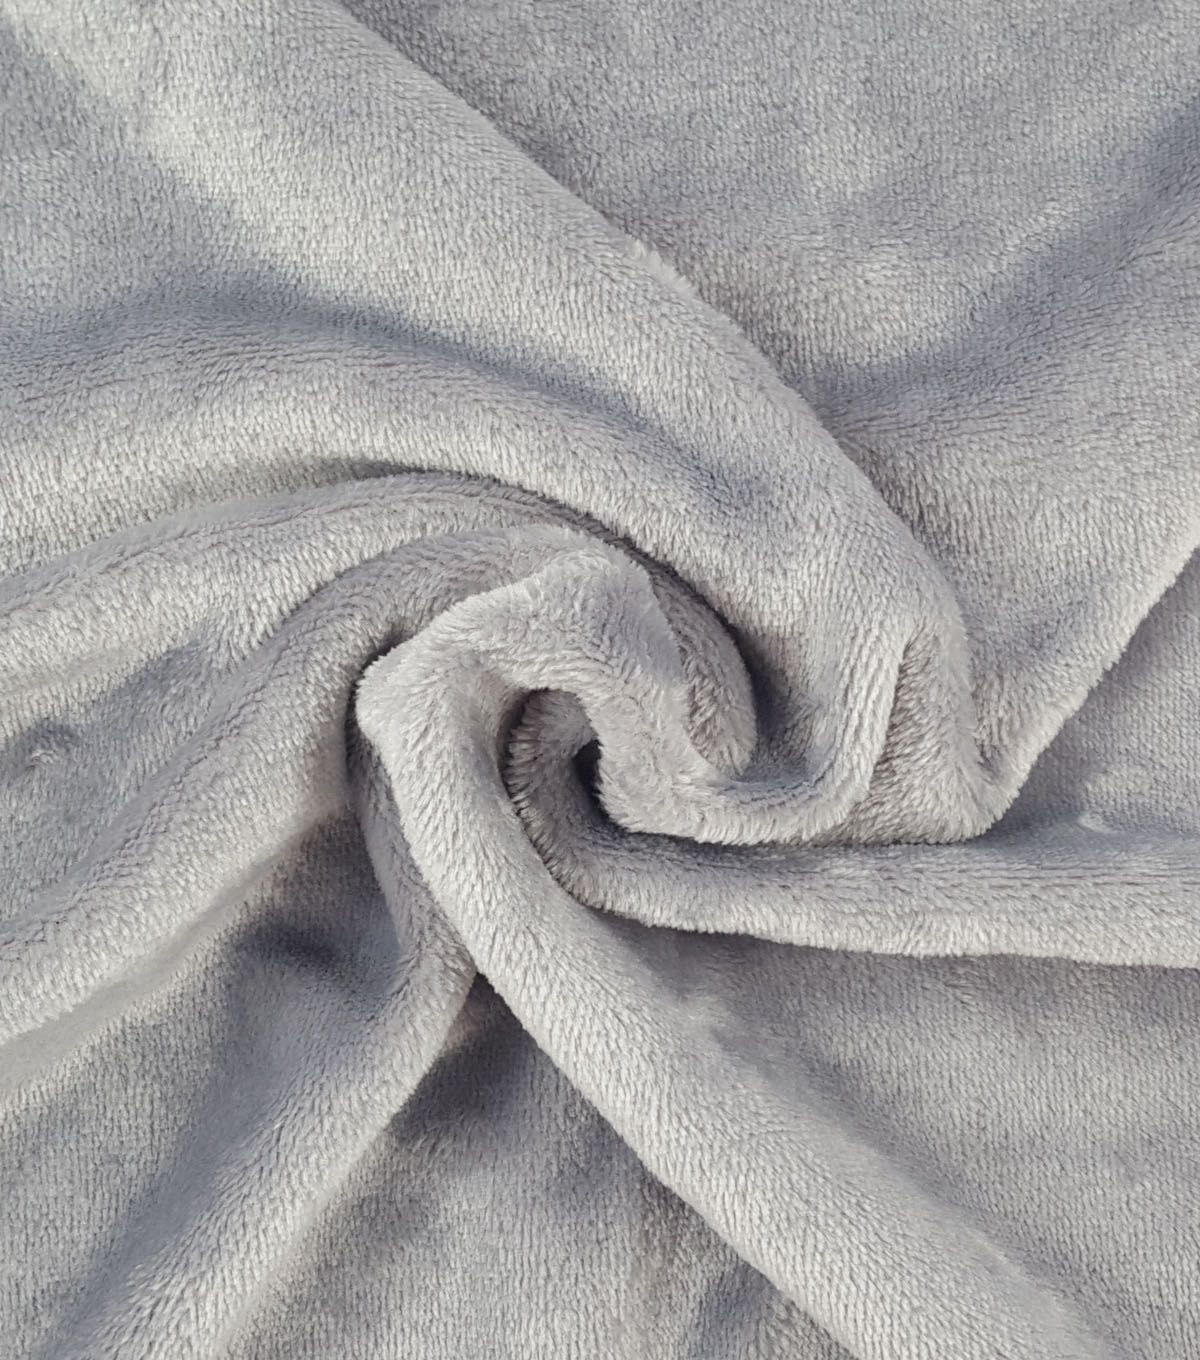 Sew lush fabric uulight gray solids lush and products